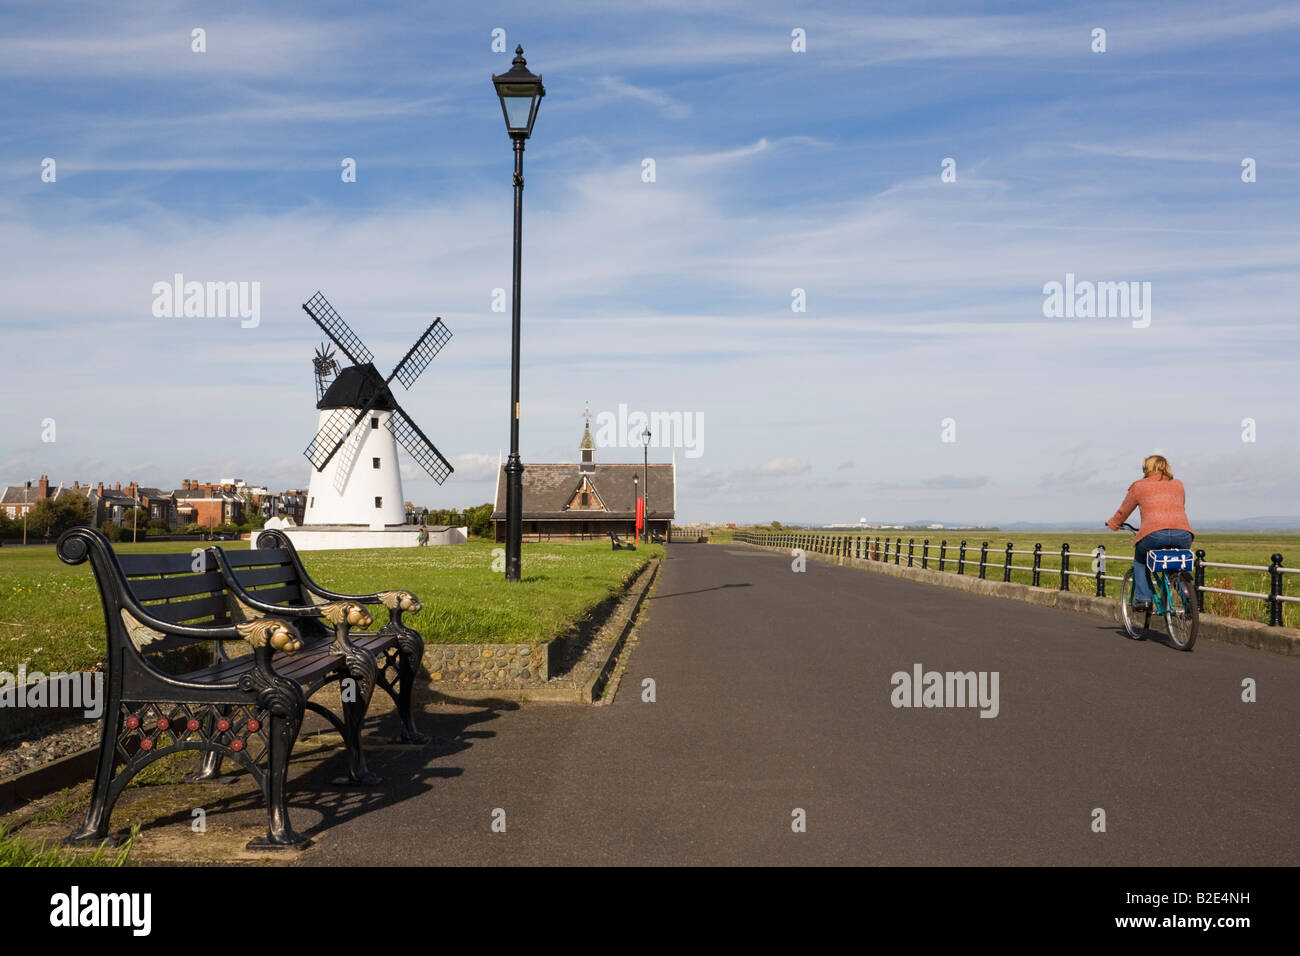 Lytham St Annes Lancashire England UK  Seafront promenade and green with restored 19th century windmill - Stock Image